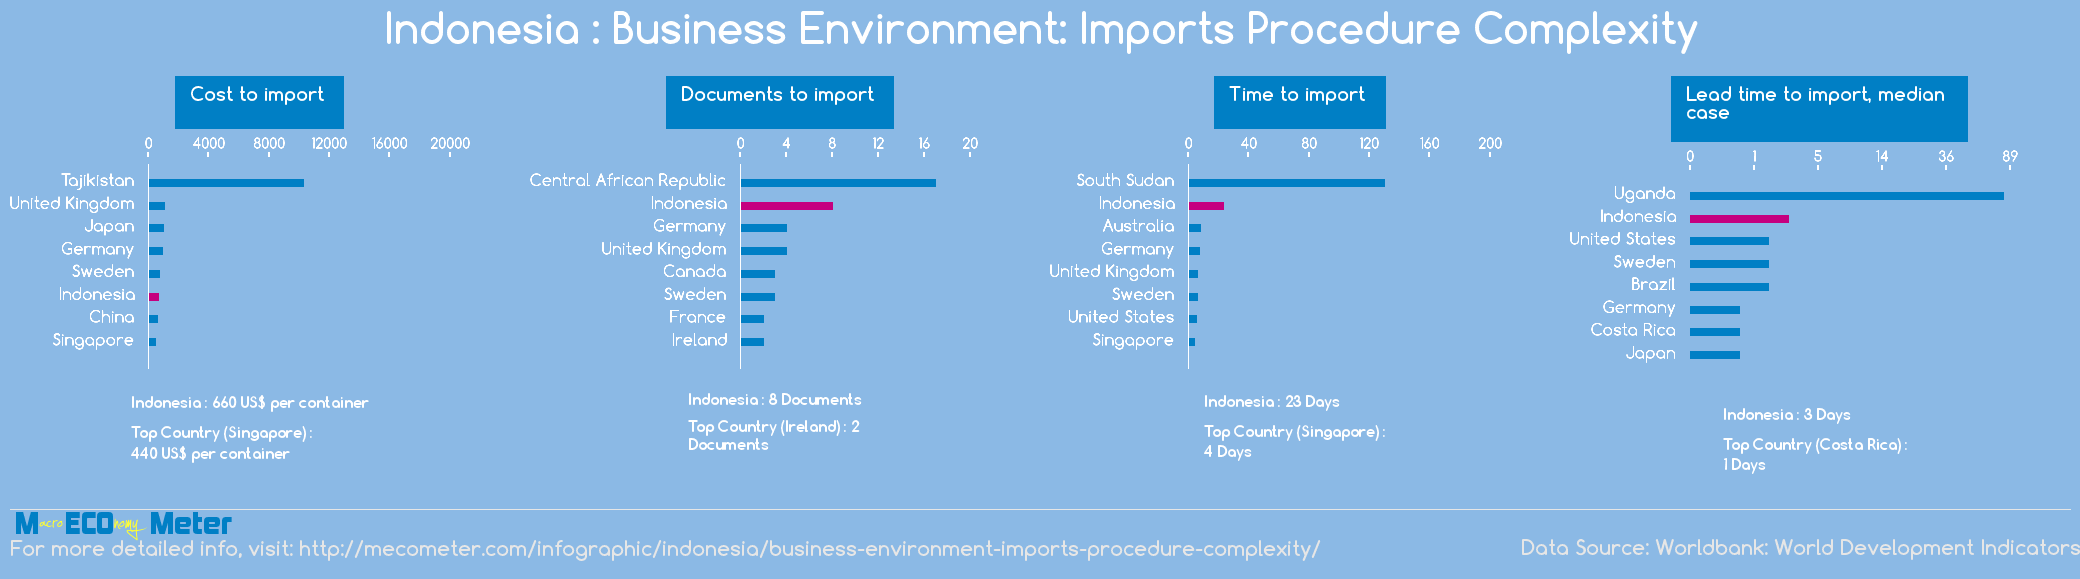 Indonesia : Business Environment: Imports Procedure Complexity